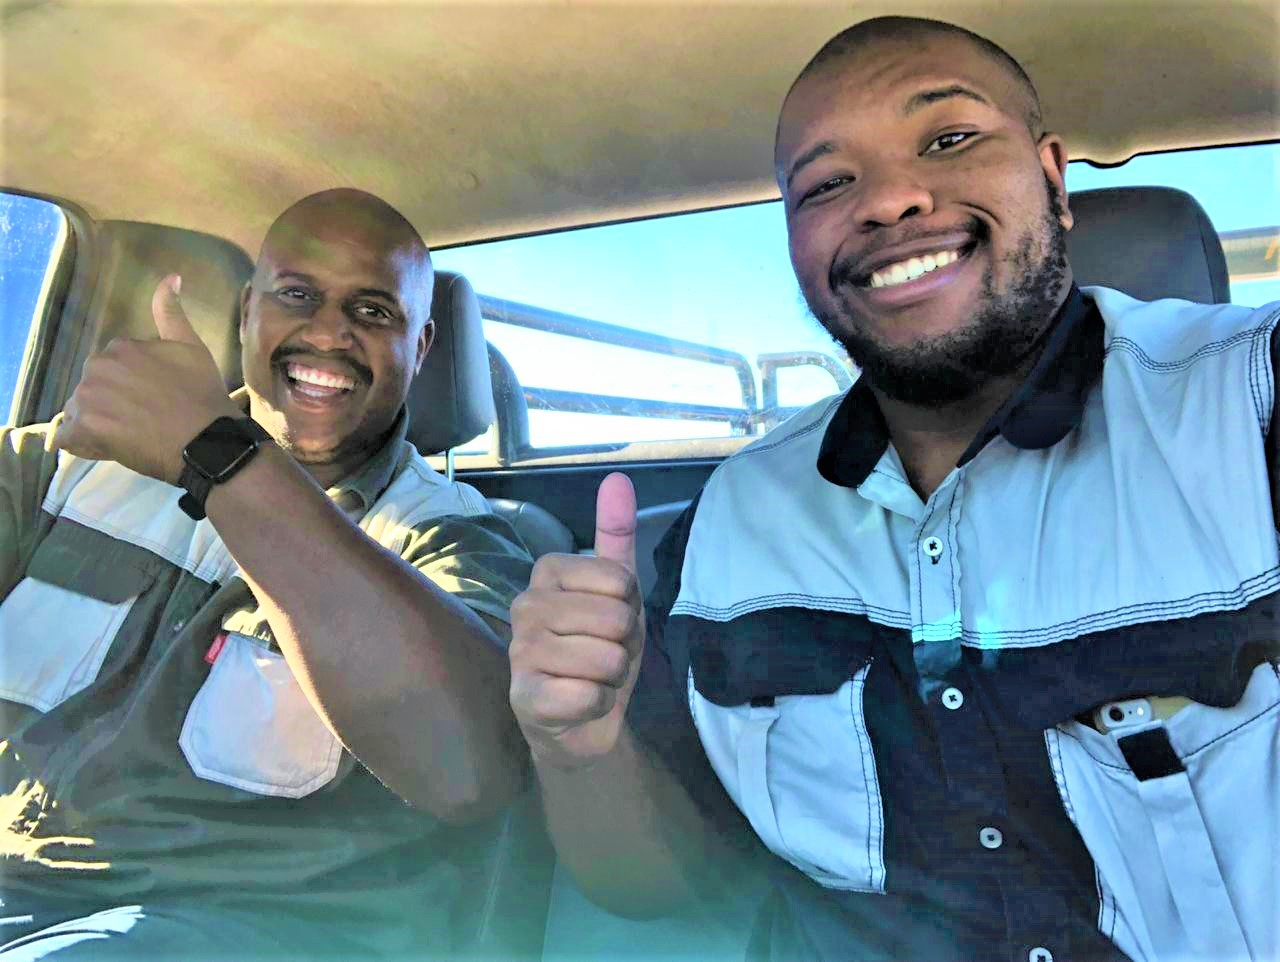 Athenkosi Denga and Soyama Mtongana have been trading livestock since they were in their teens. Today, the duo is running the first black-owned auction service in the Eastern Cape. Photo: Supplied.